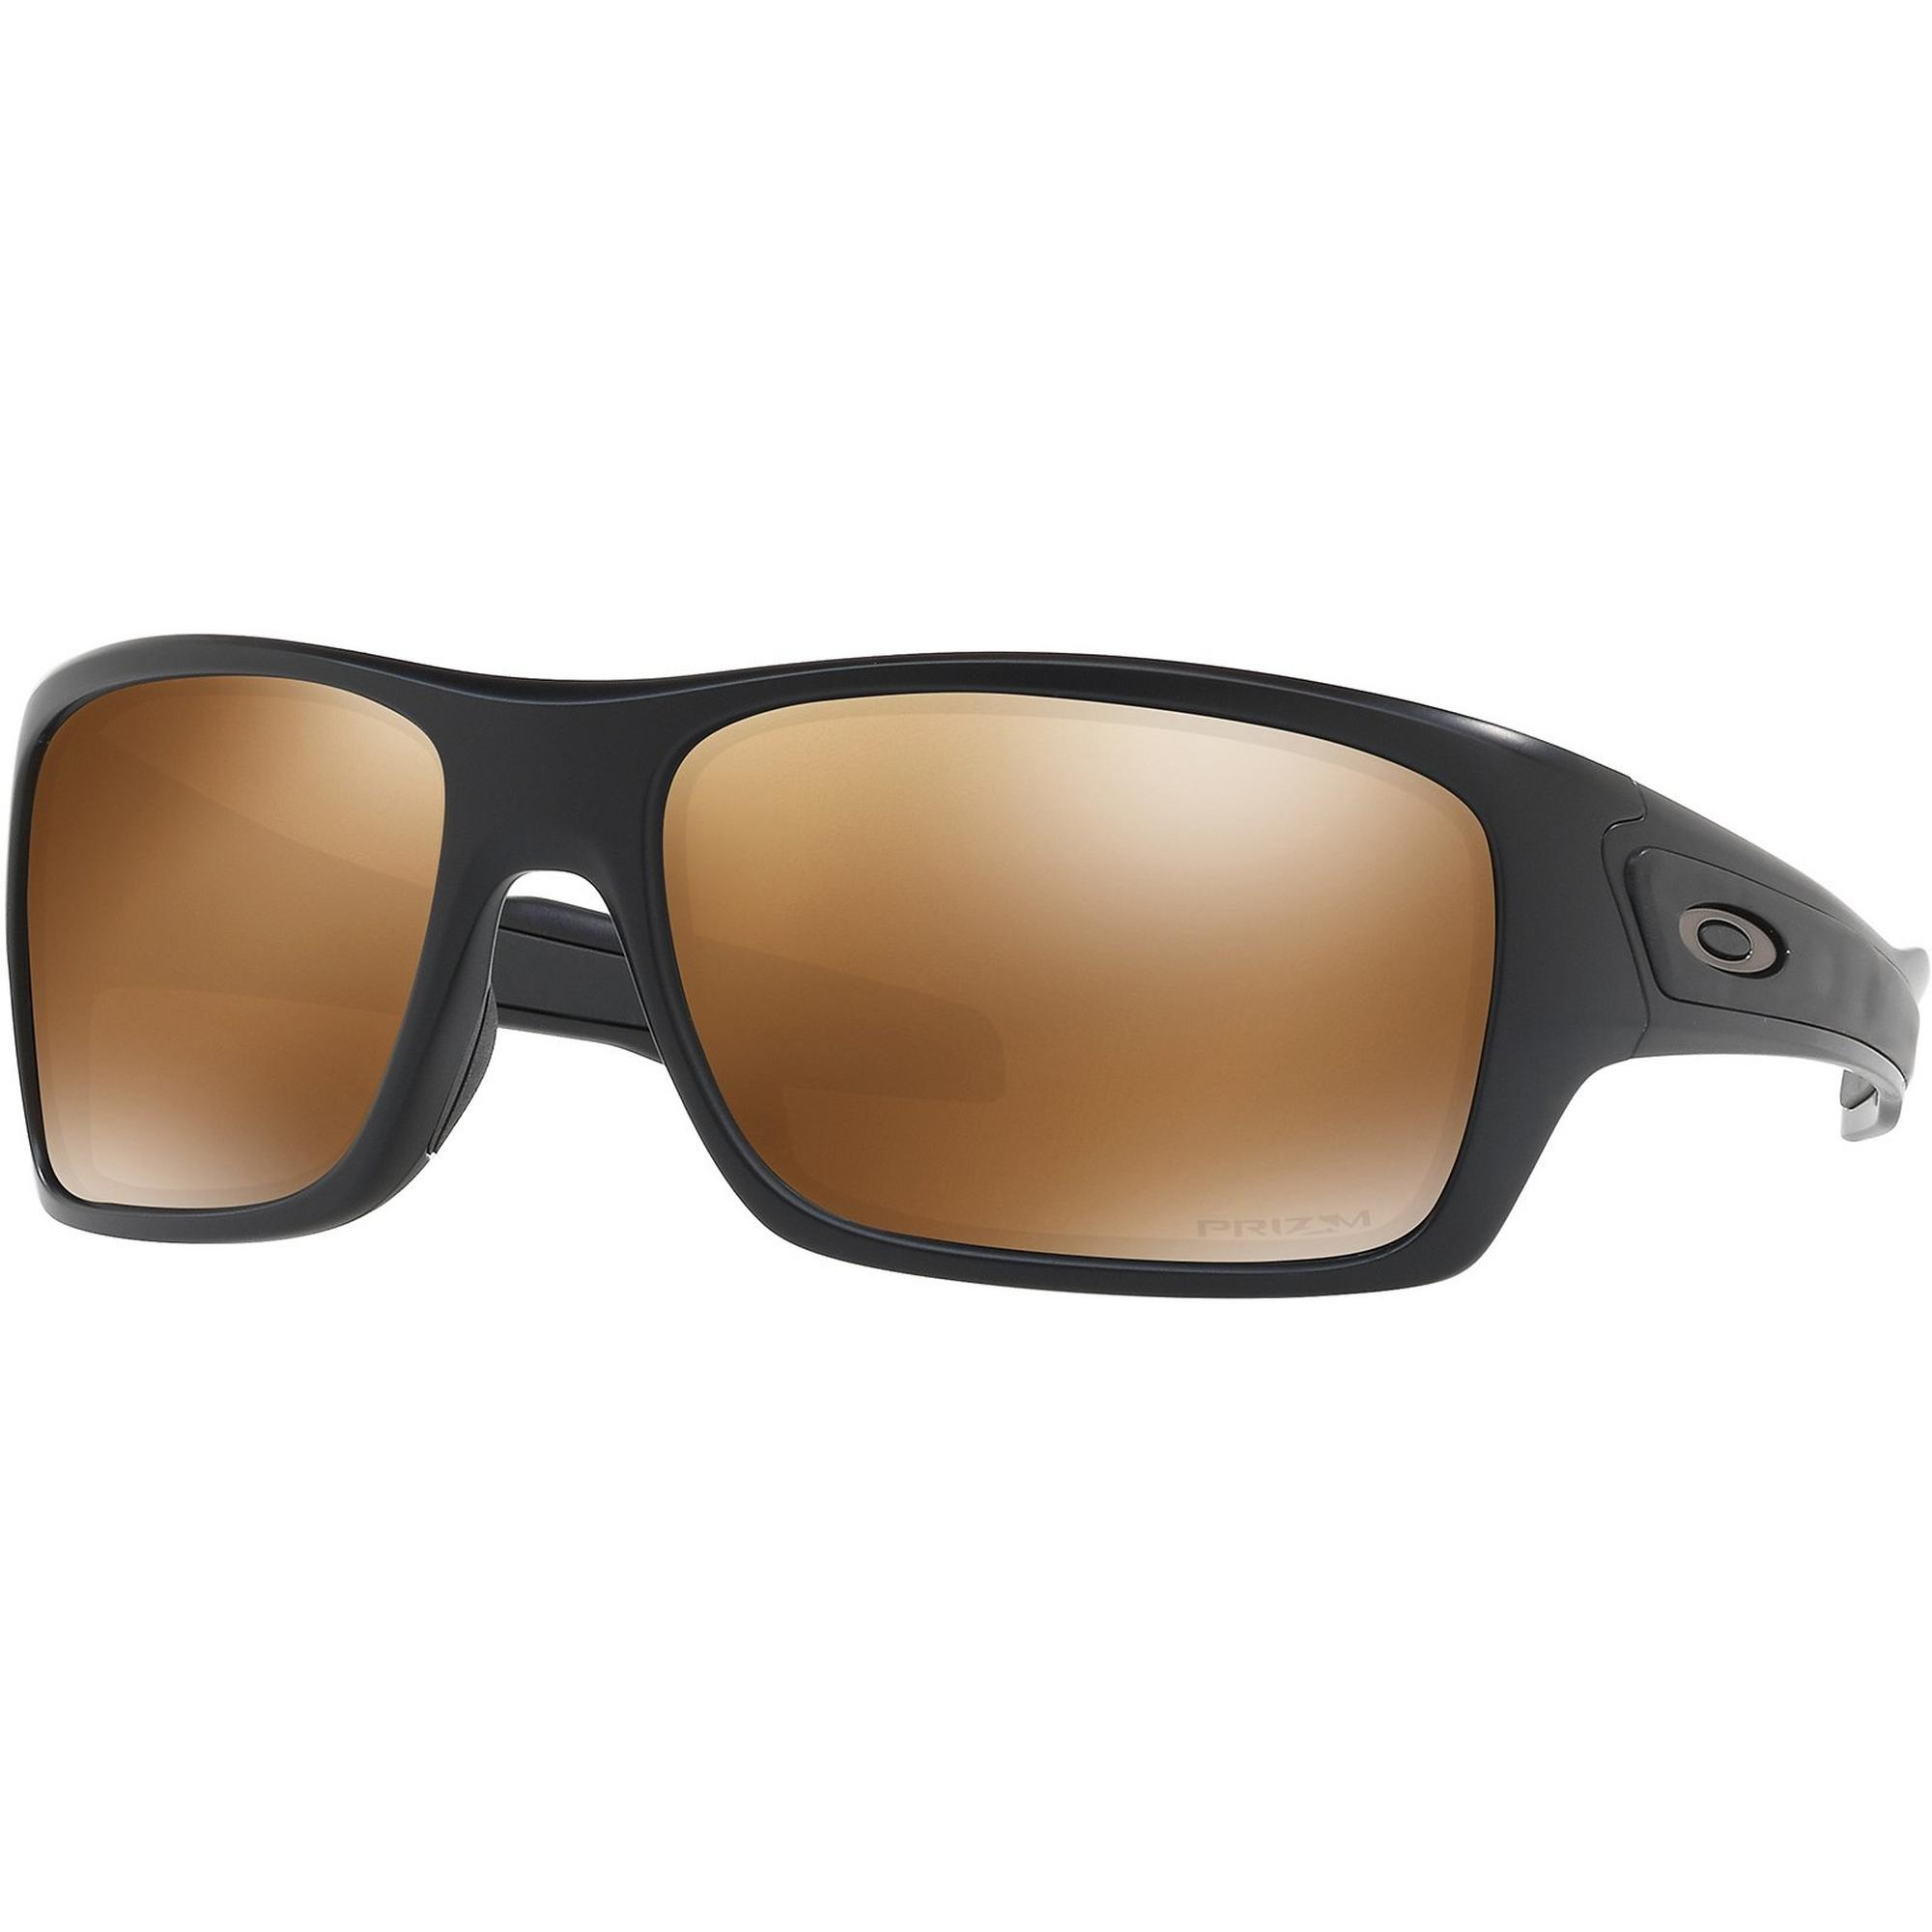 Men's Turbine Prizm Polarized Sunglasses